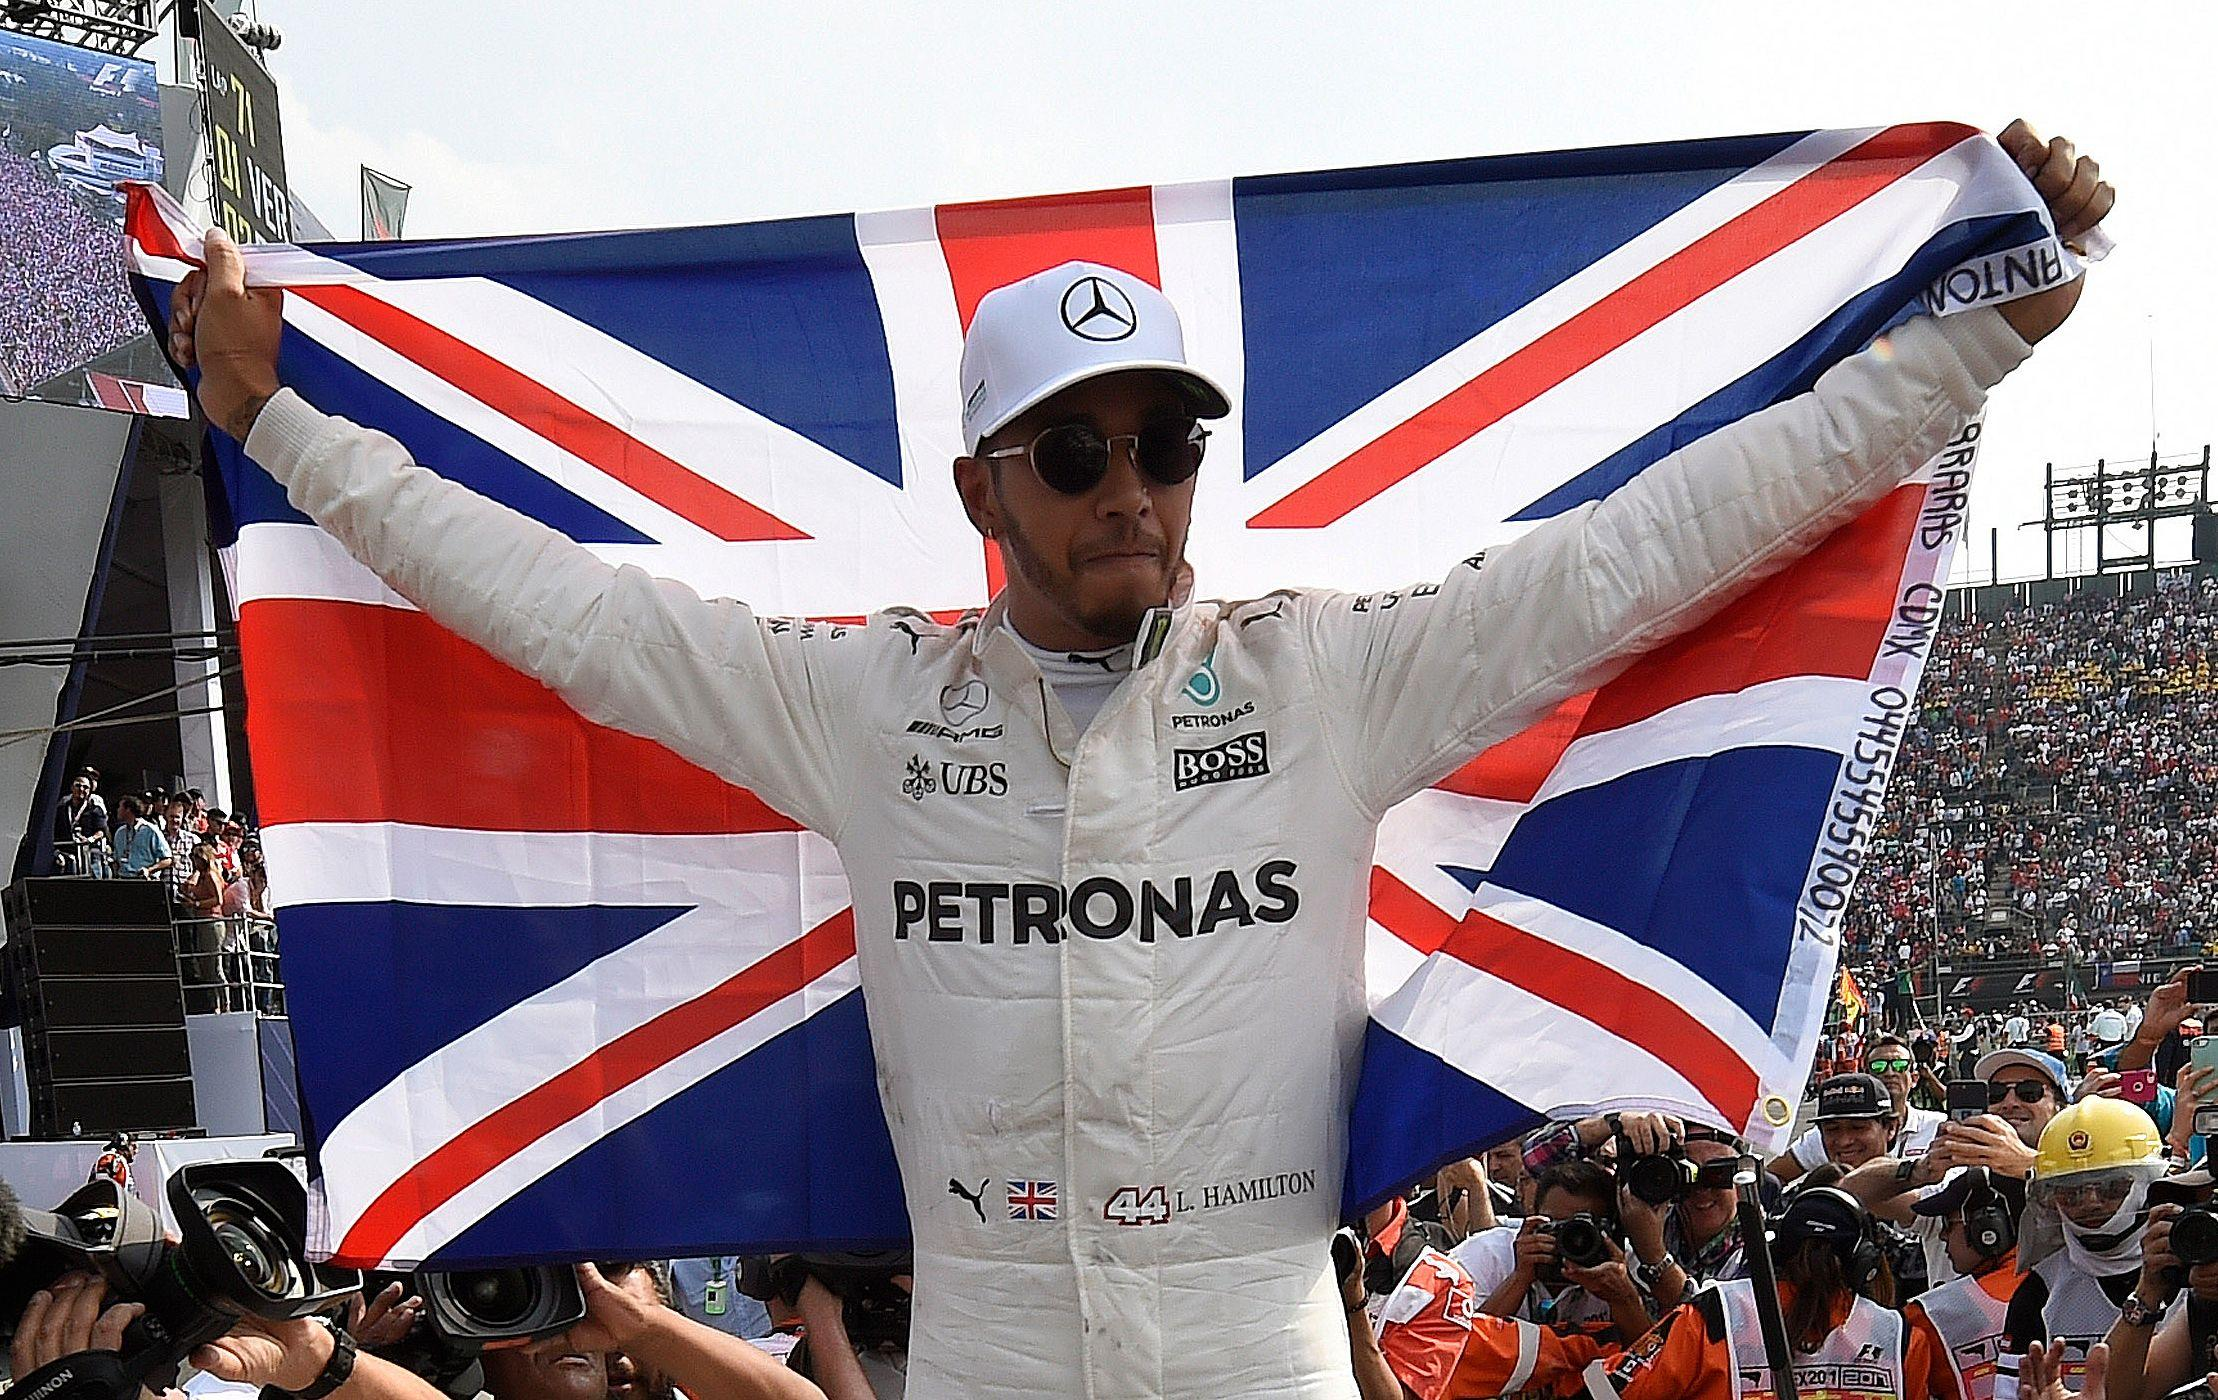 Lewis Hamilton is looking for a fifth F1 World Championship